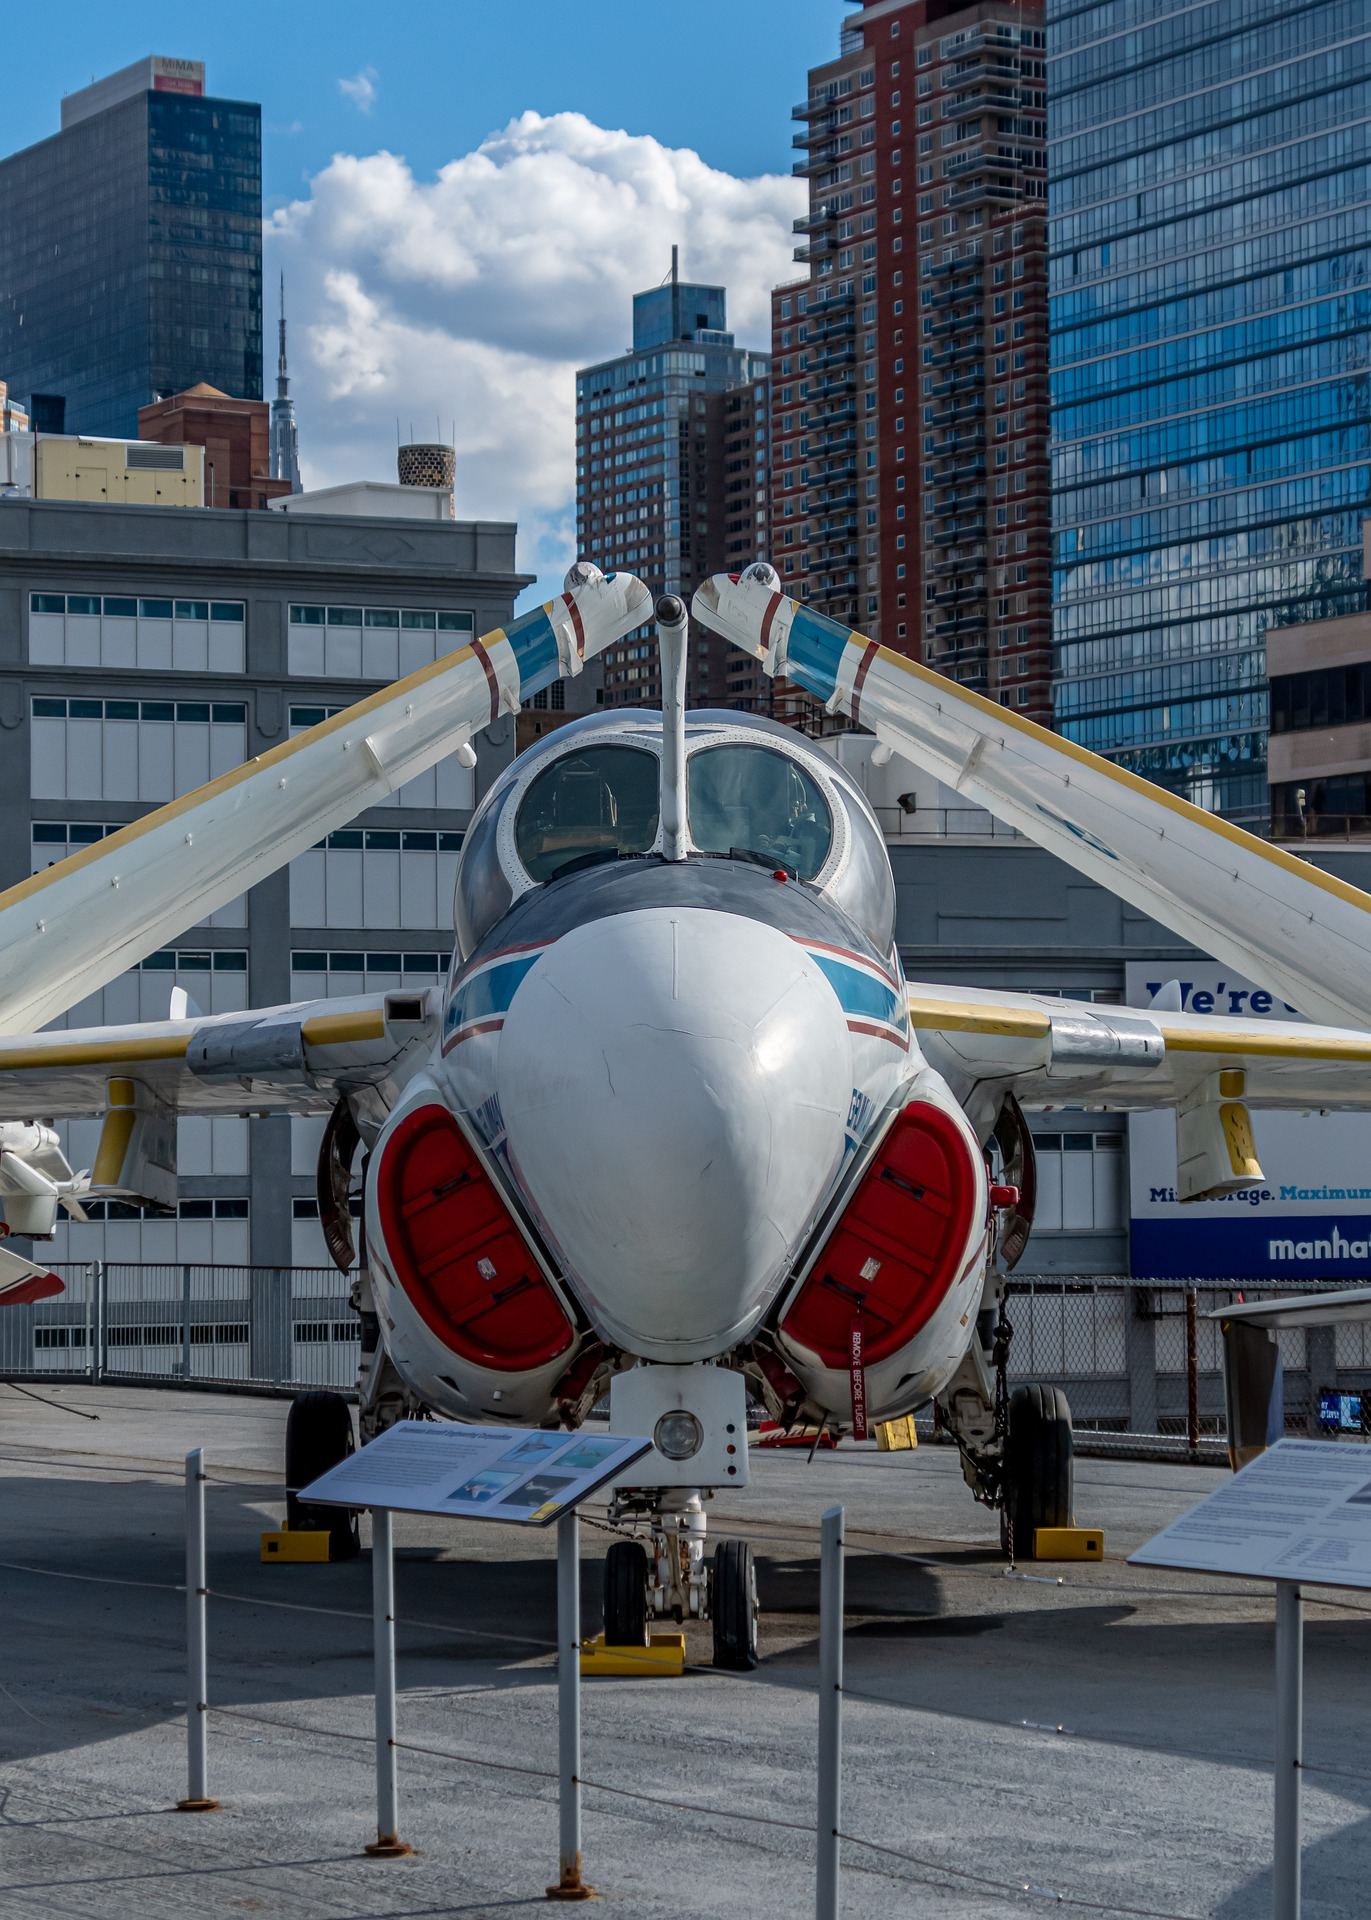 Plane at the USS Intrepid Museum.